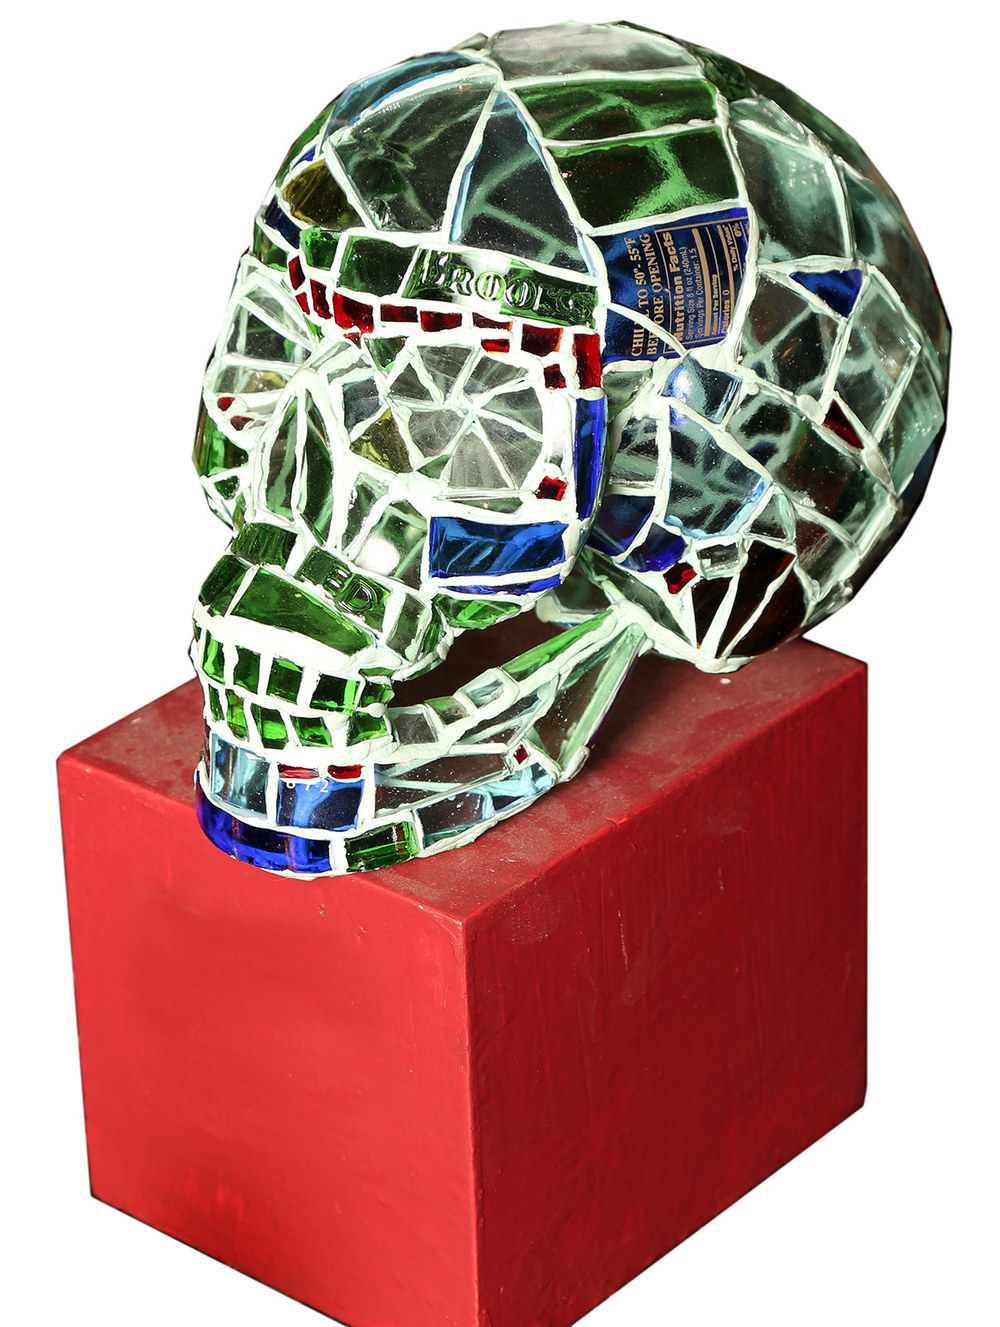 Red Truck Gallery Red, Blue & Green Skull by Andres Basurto